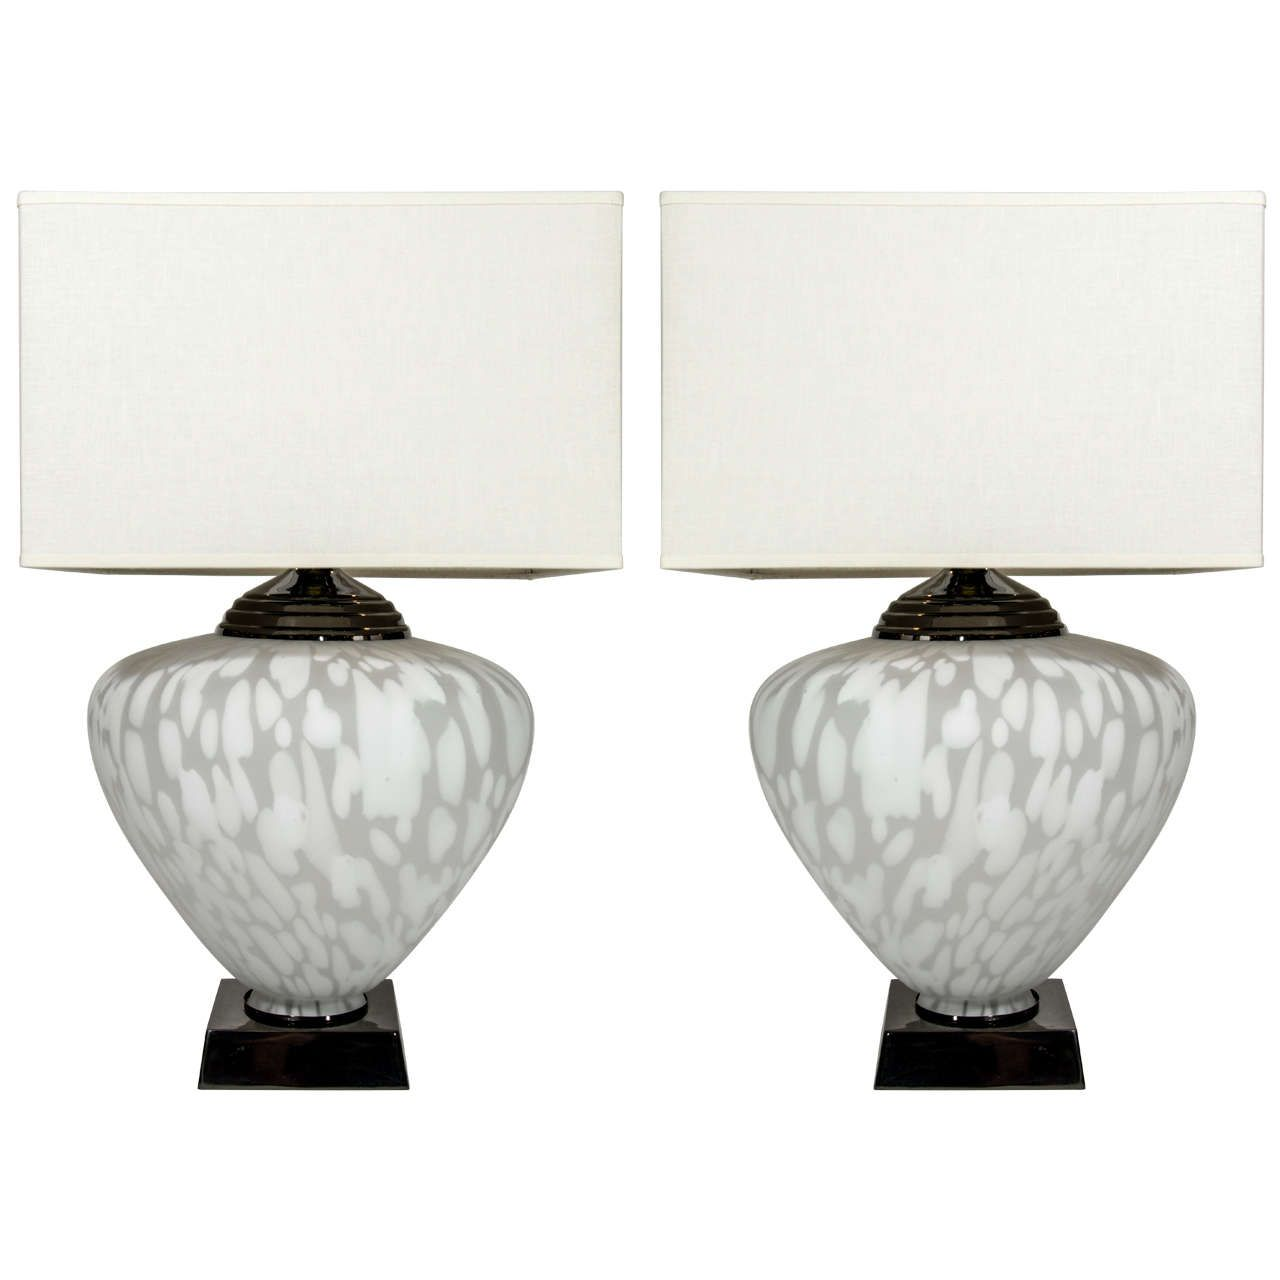 Pair of ultra modern large murano glass lamps with illuminated urns pair of ultra modern large murano glass lamps with illuminated urns aloadofball Gallery